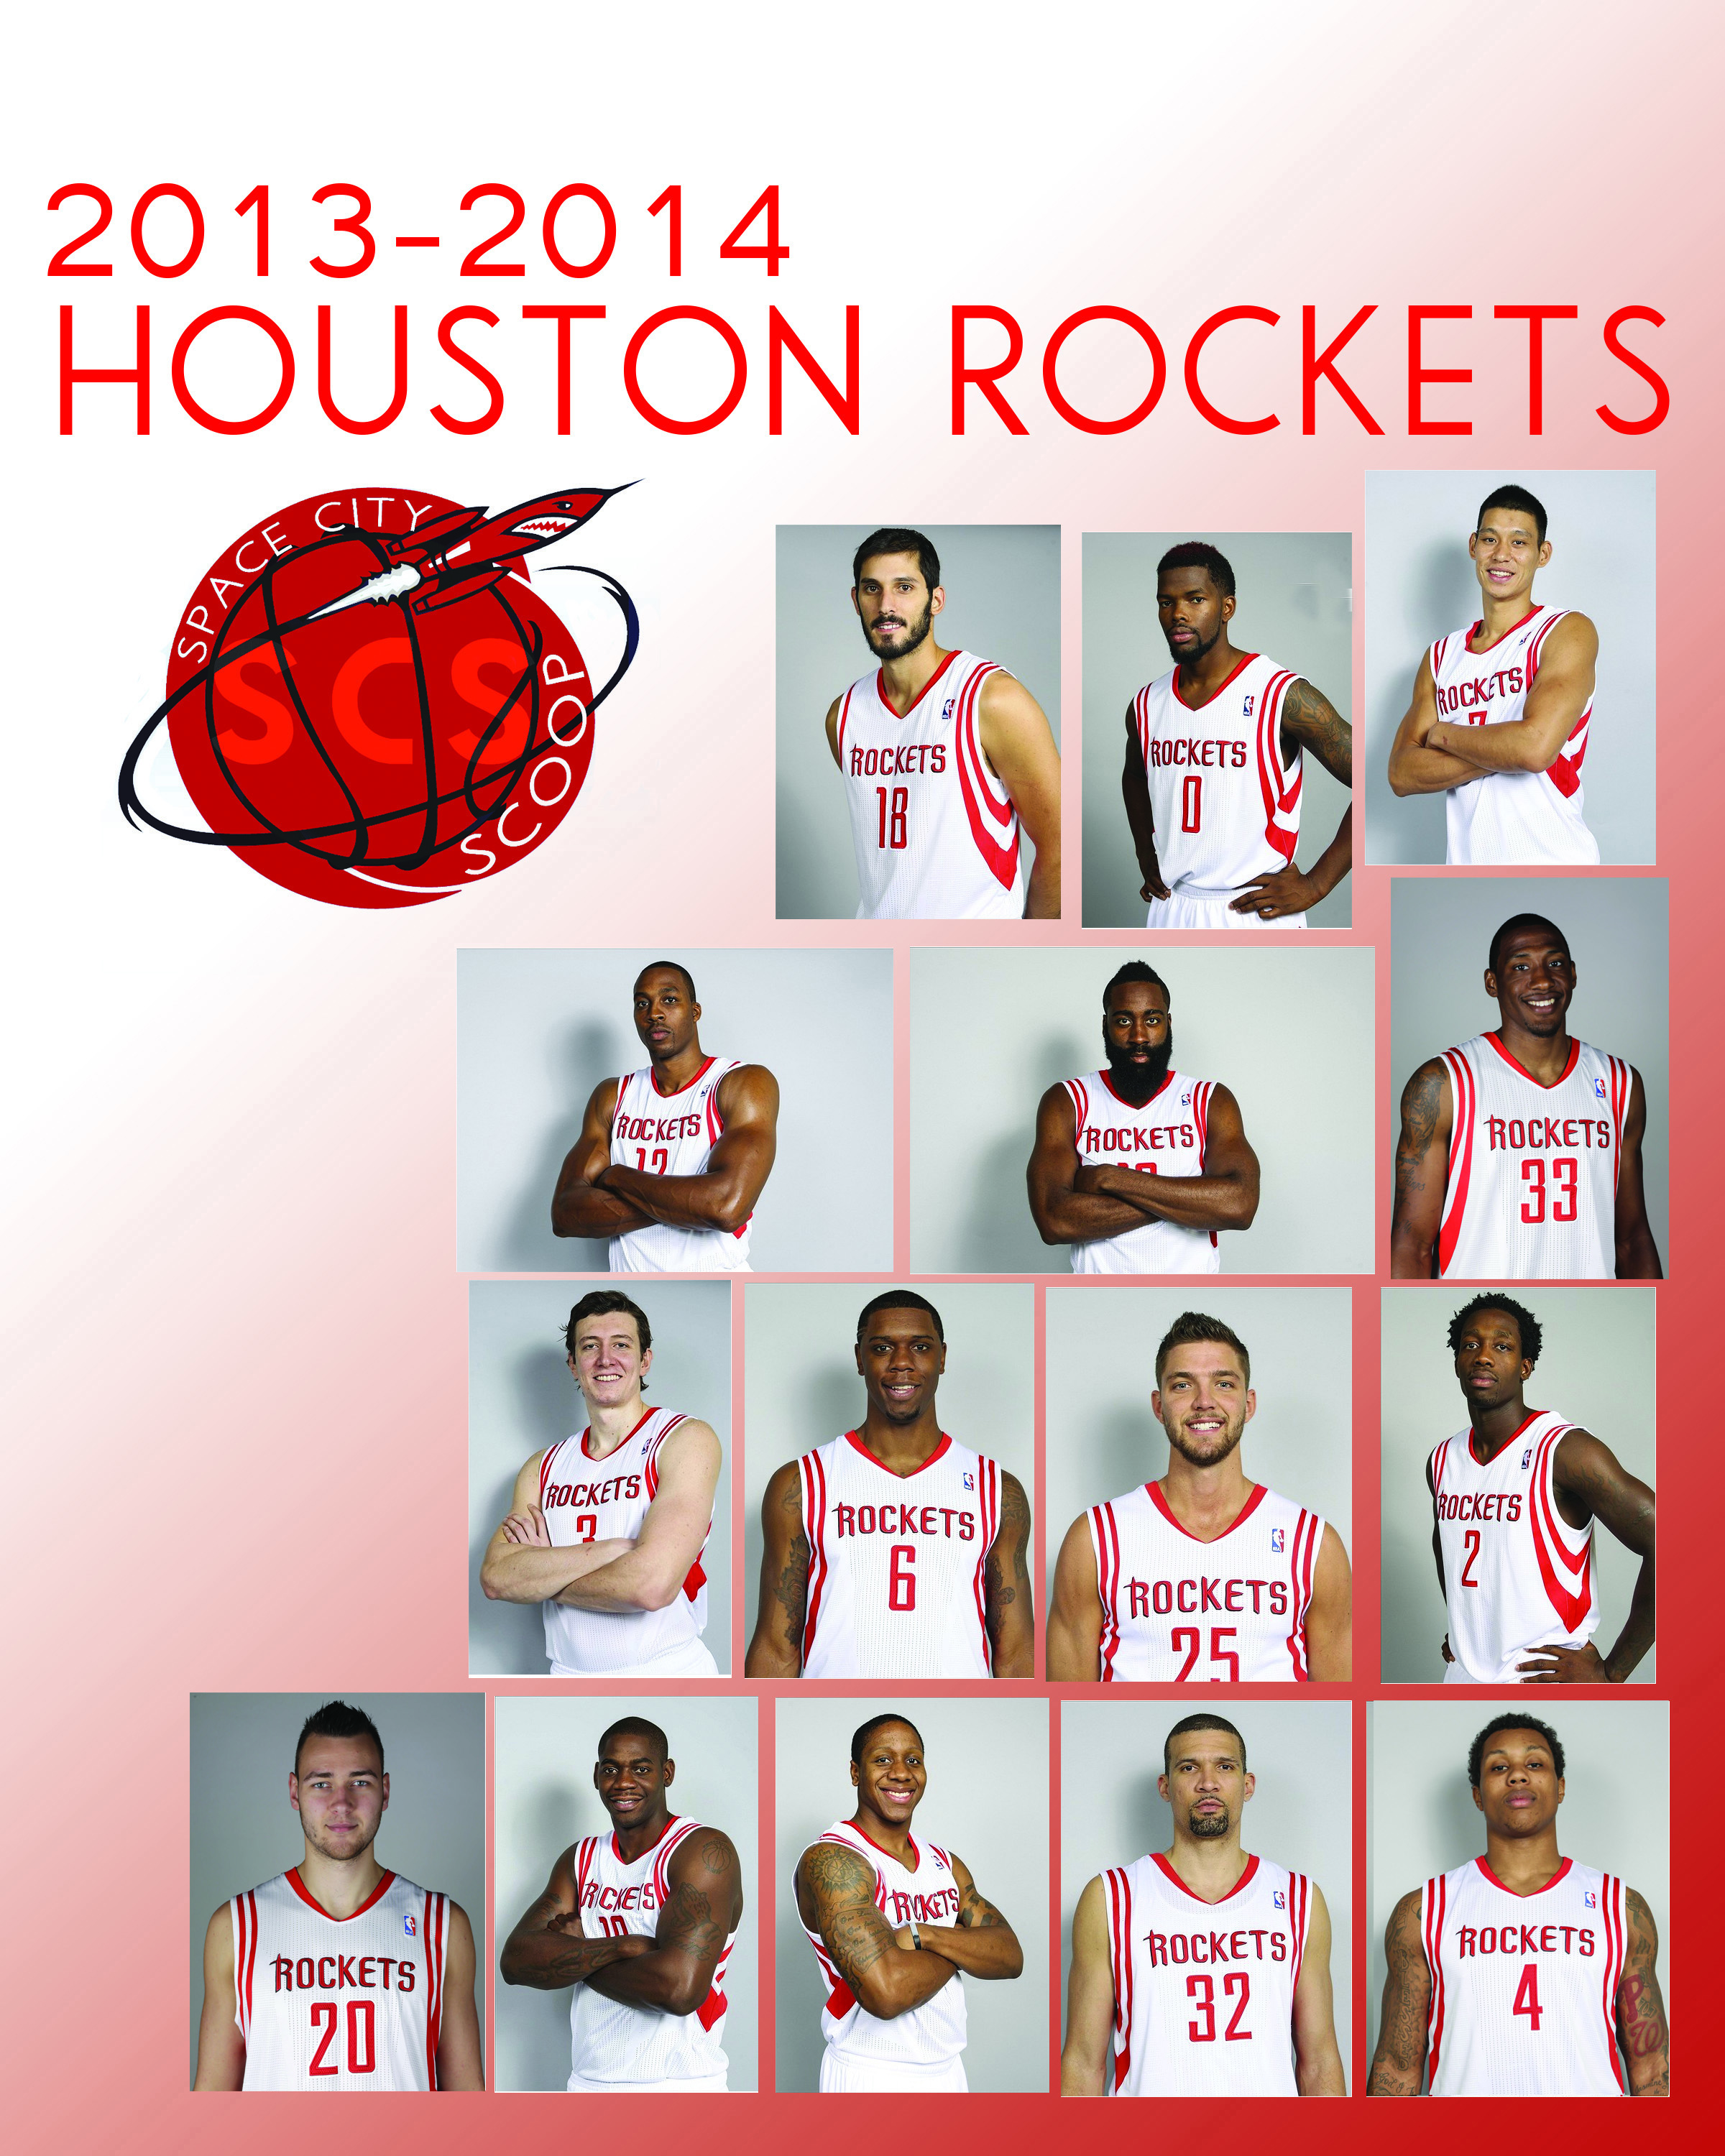 Houston Rockets Championship Roster: Houston Rockets Roster, Dallas Cowboys And Washington Redskins